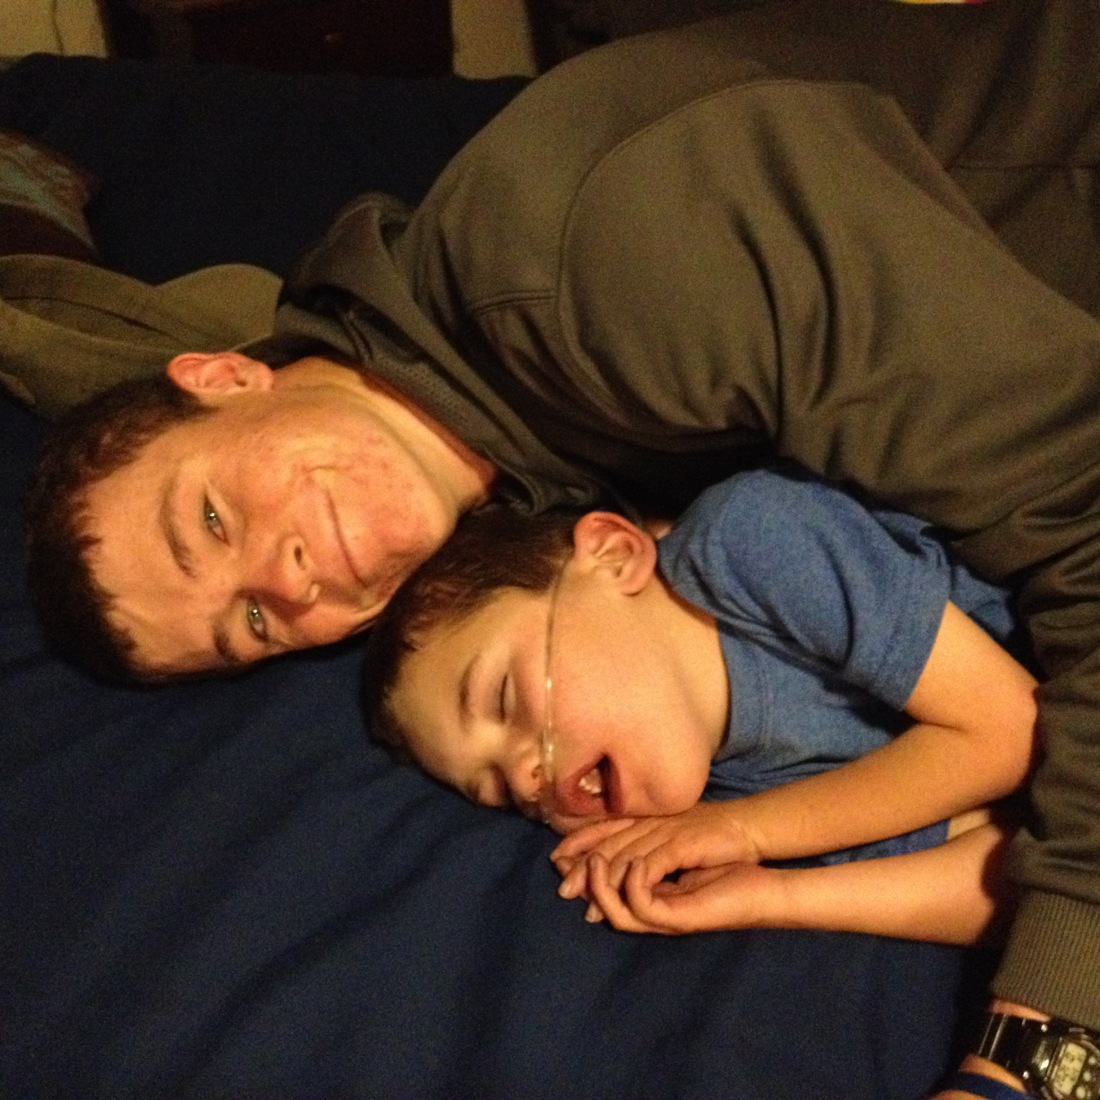 Wilson's late night return from a college visit…1st stop?  Steal a hug from a sleeping Rudy.